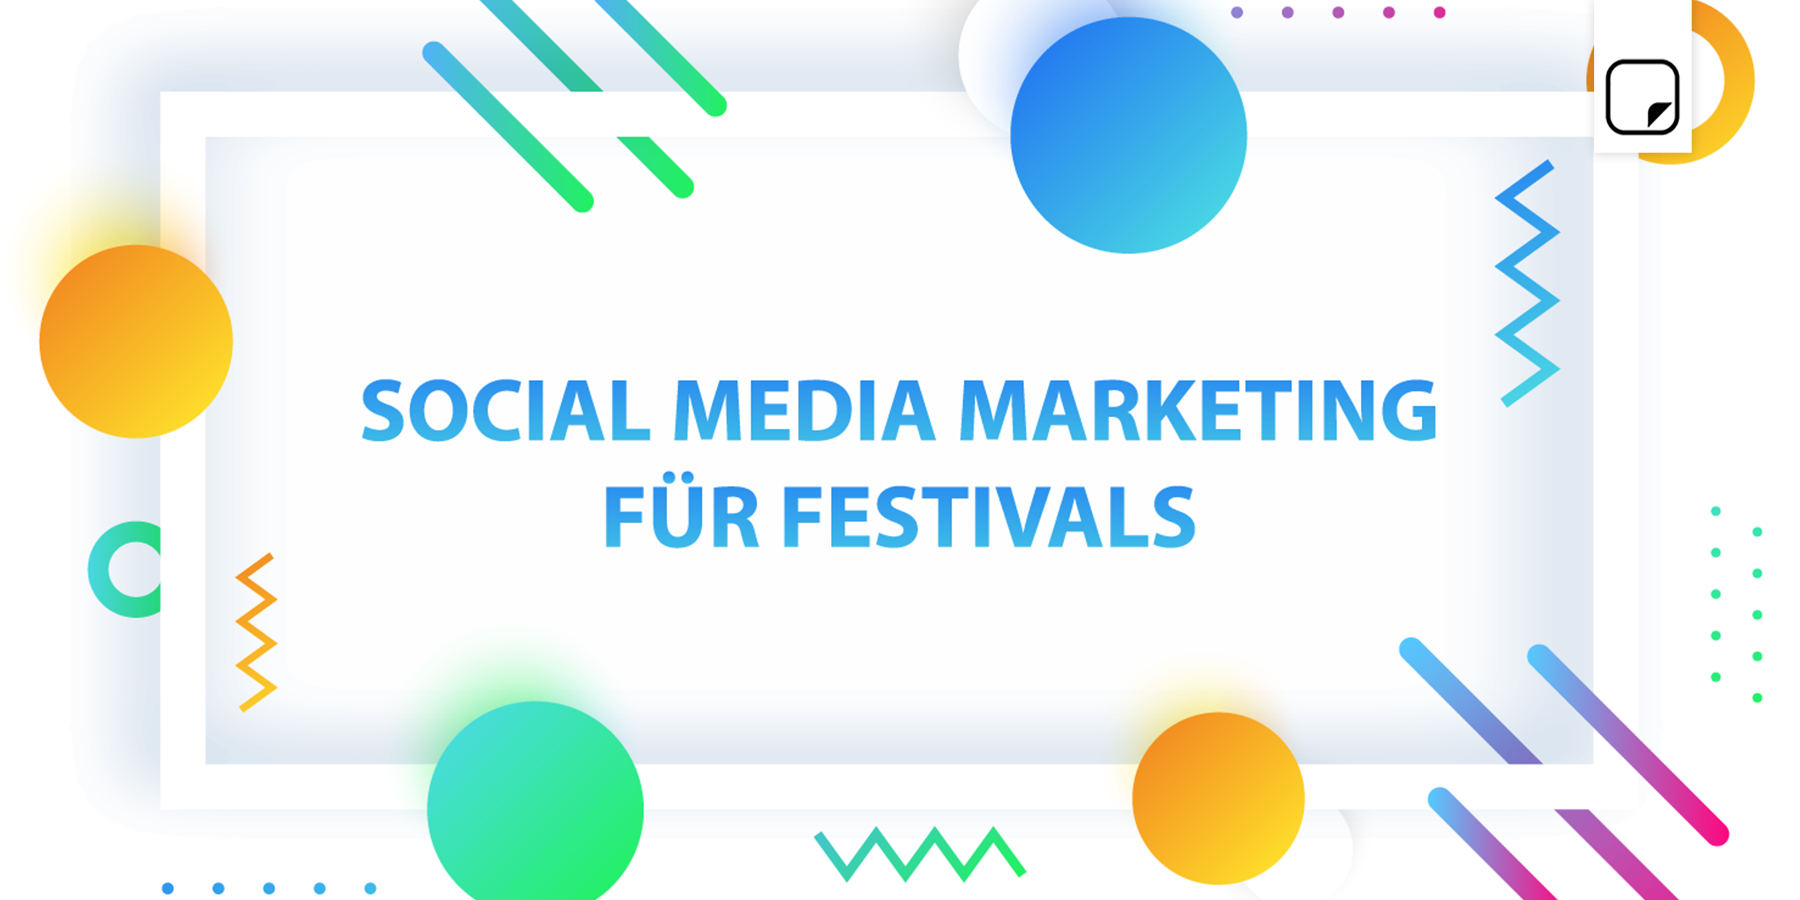 Social Media Marketing für Festivals